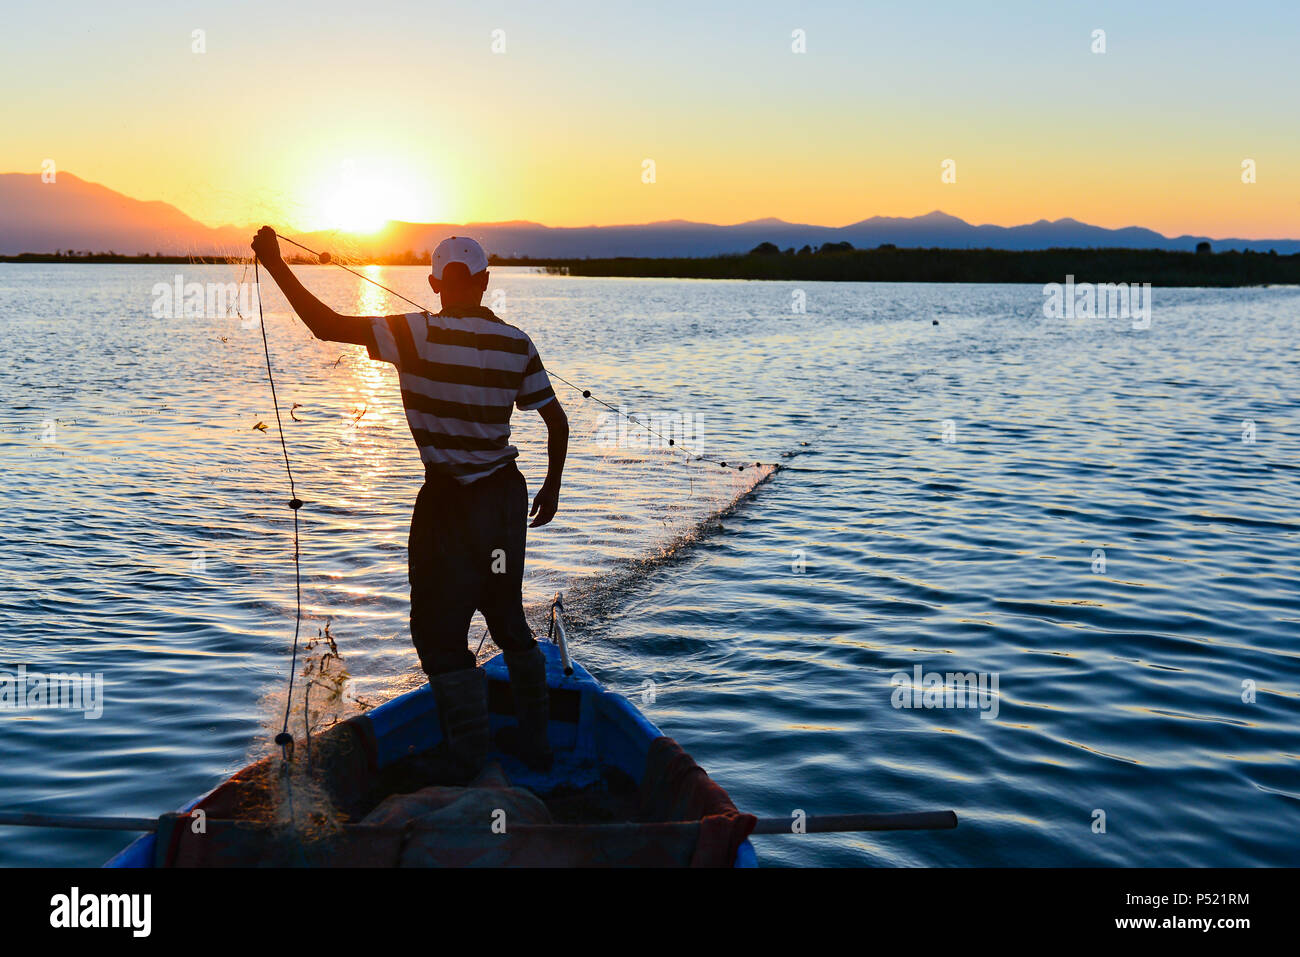 fishing daily working concept - Stock Image